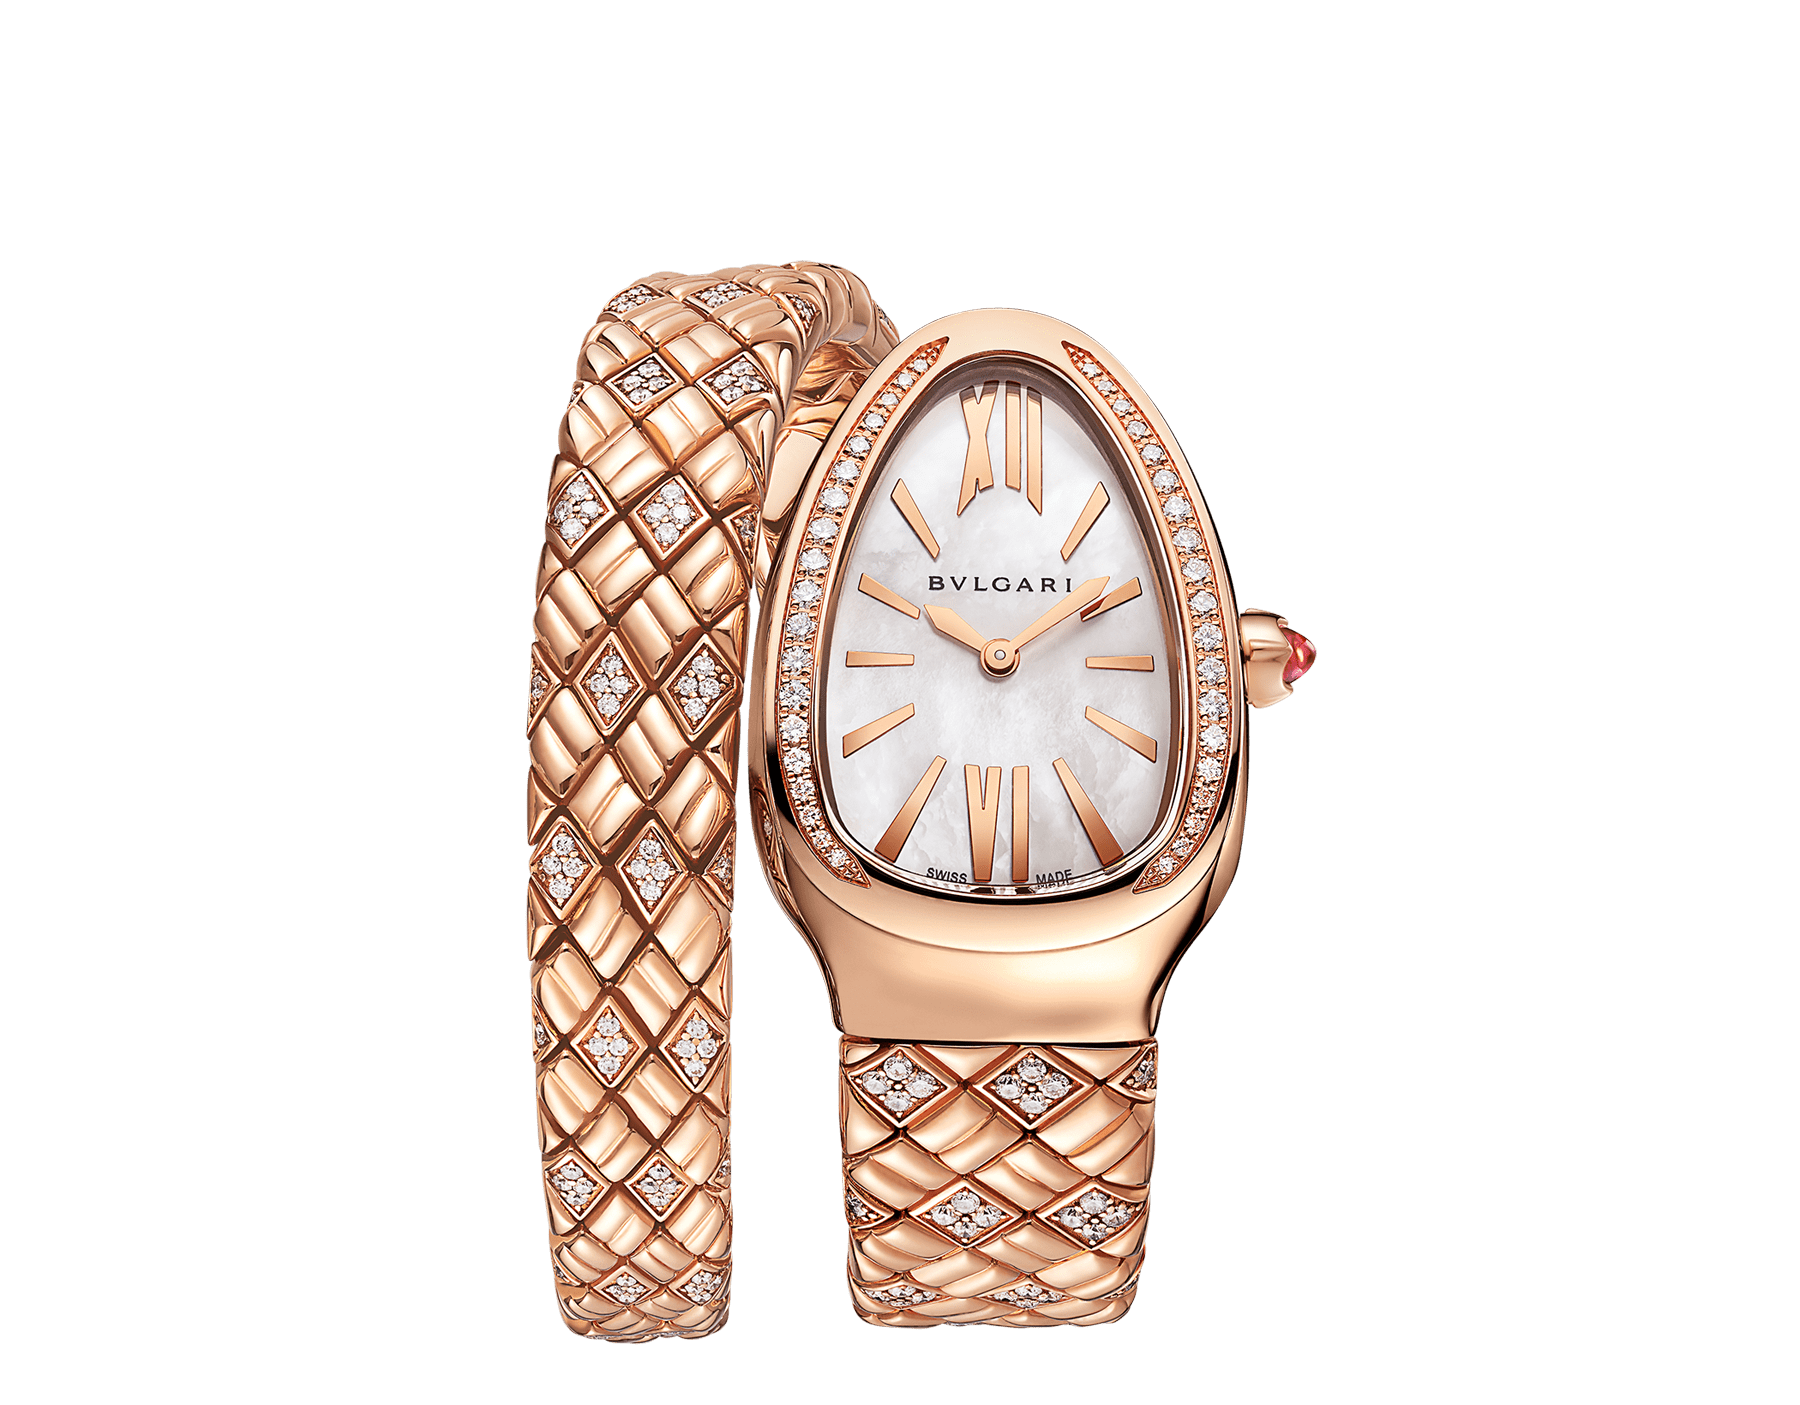 Serpenti Spiga single-spiral watch with 18 kt rose gold case and bracelet set with diamonds, and white mother-of-pearl dial 103250 image 1